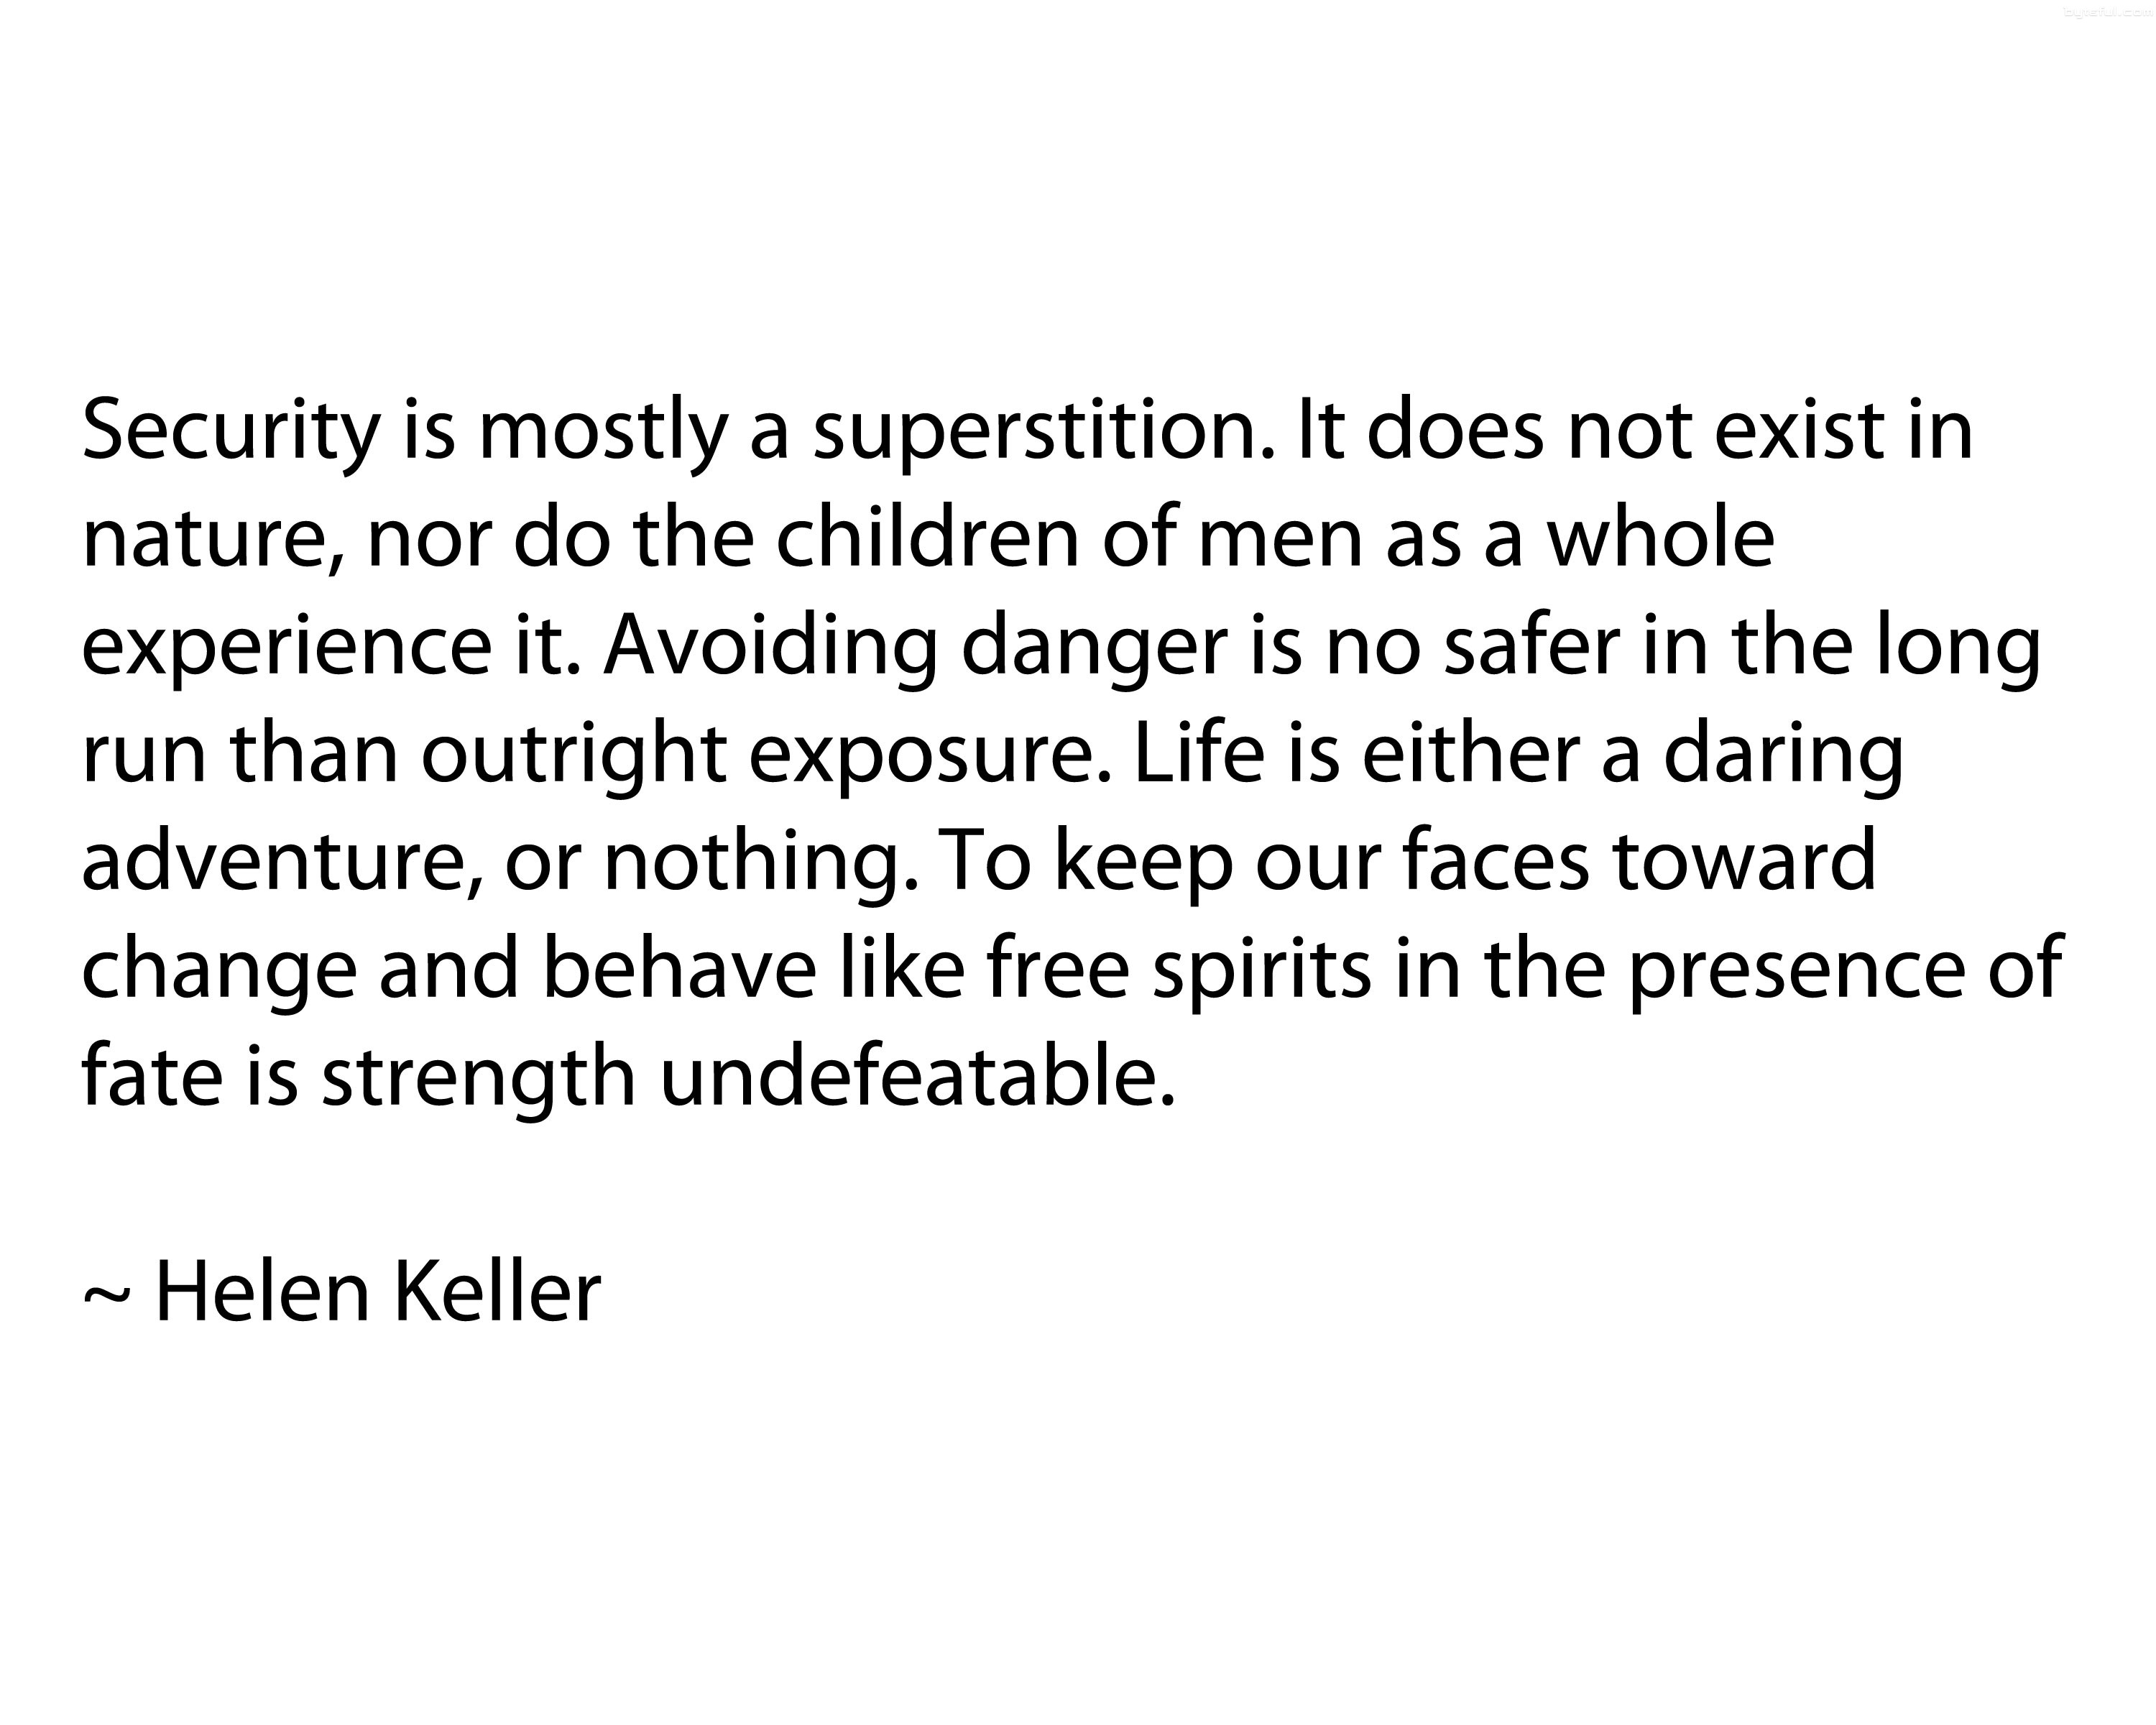 Helen kellers quotes famous and not much sualci quotes helen kellers quote 2 altavistaventures Image collections